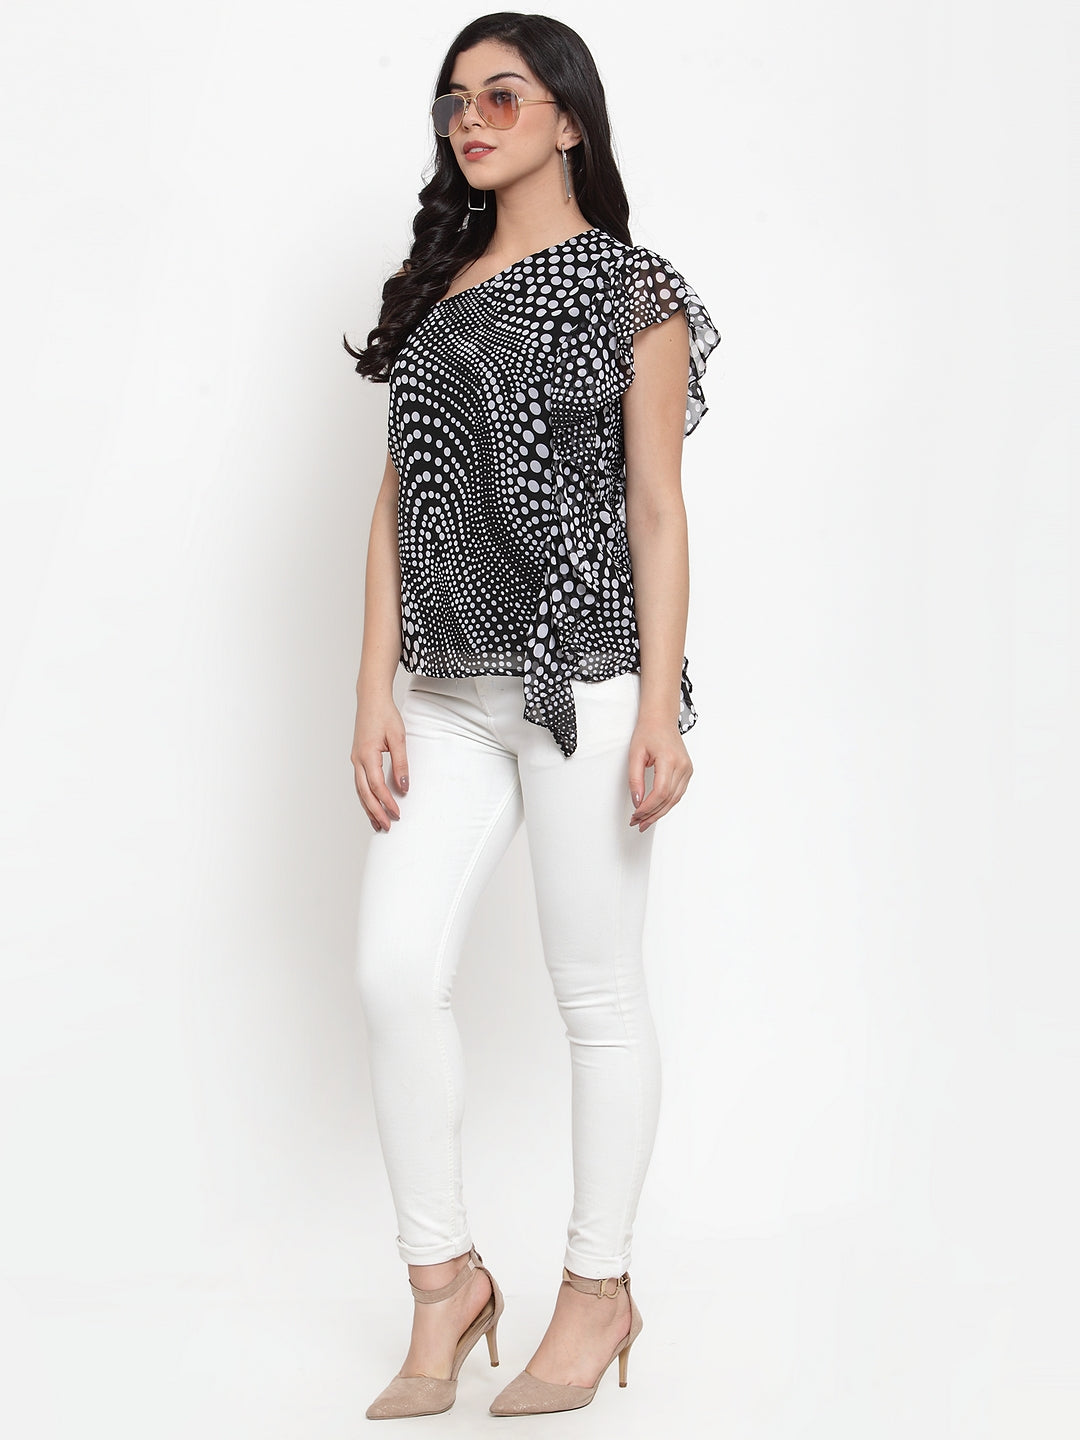 Aujjessa Black White One Off Shoulder Top